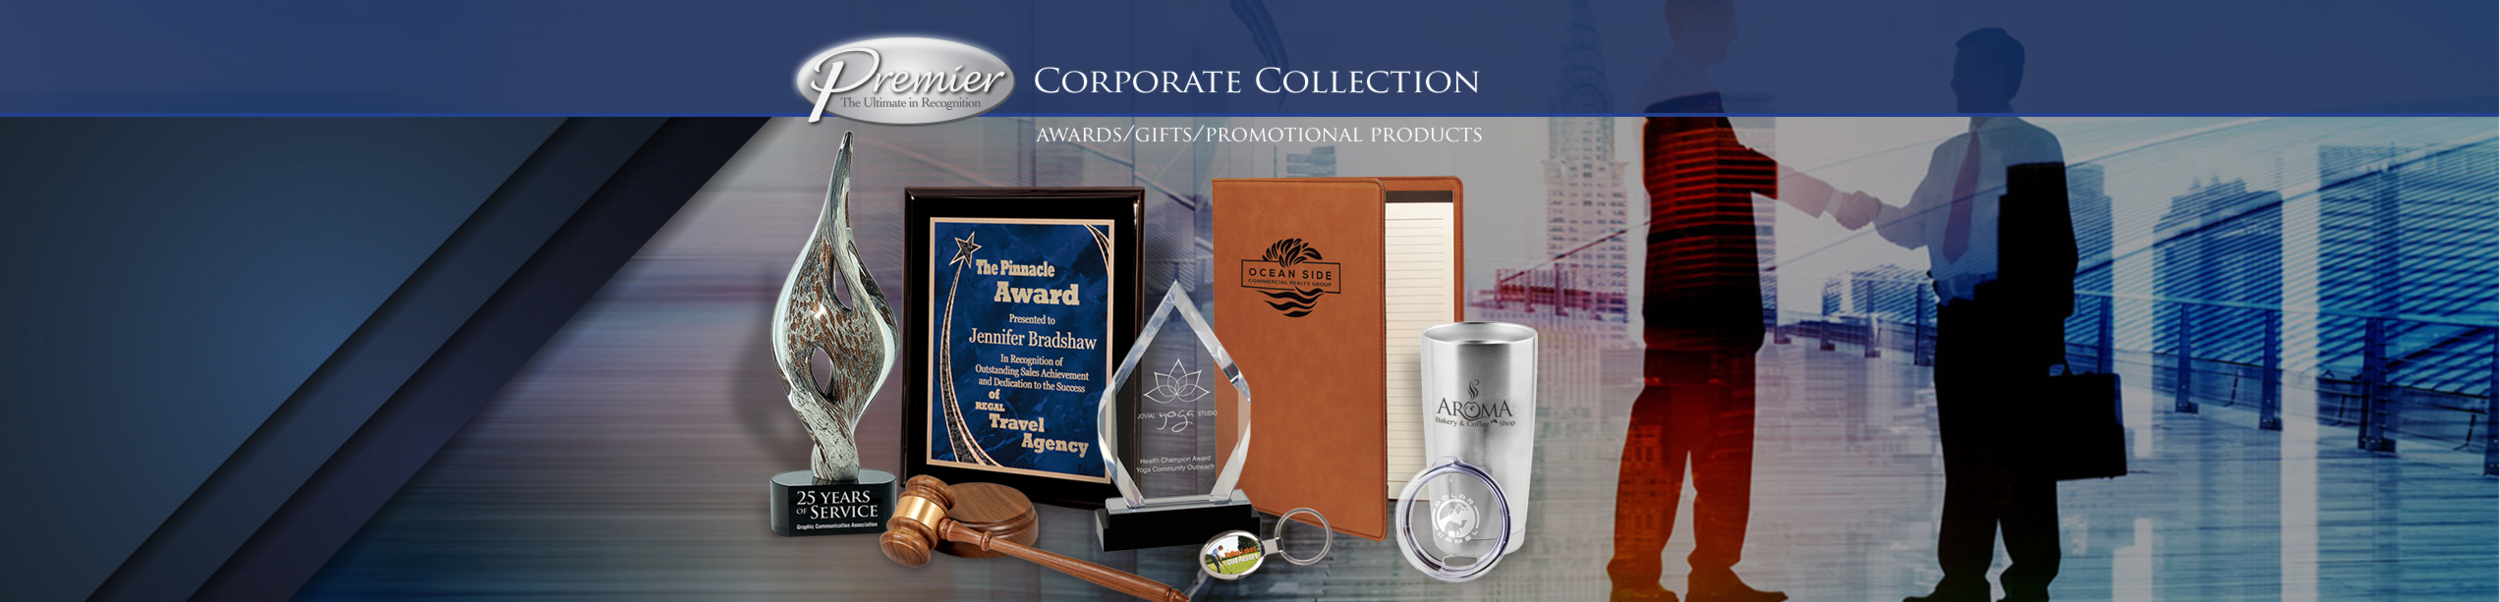 premier corporate collection.PNG